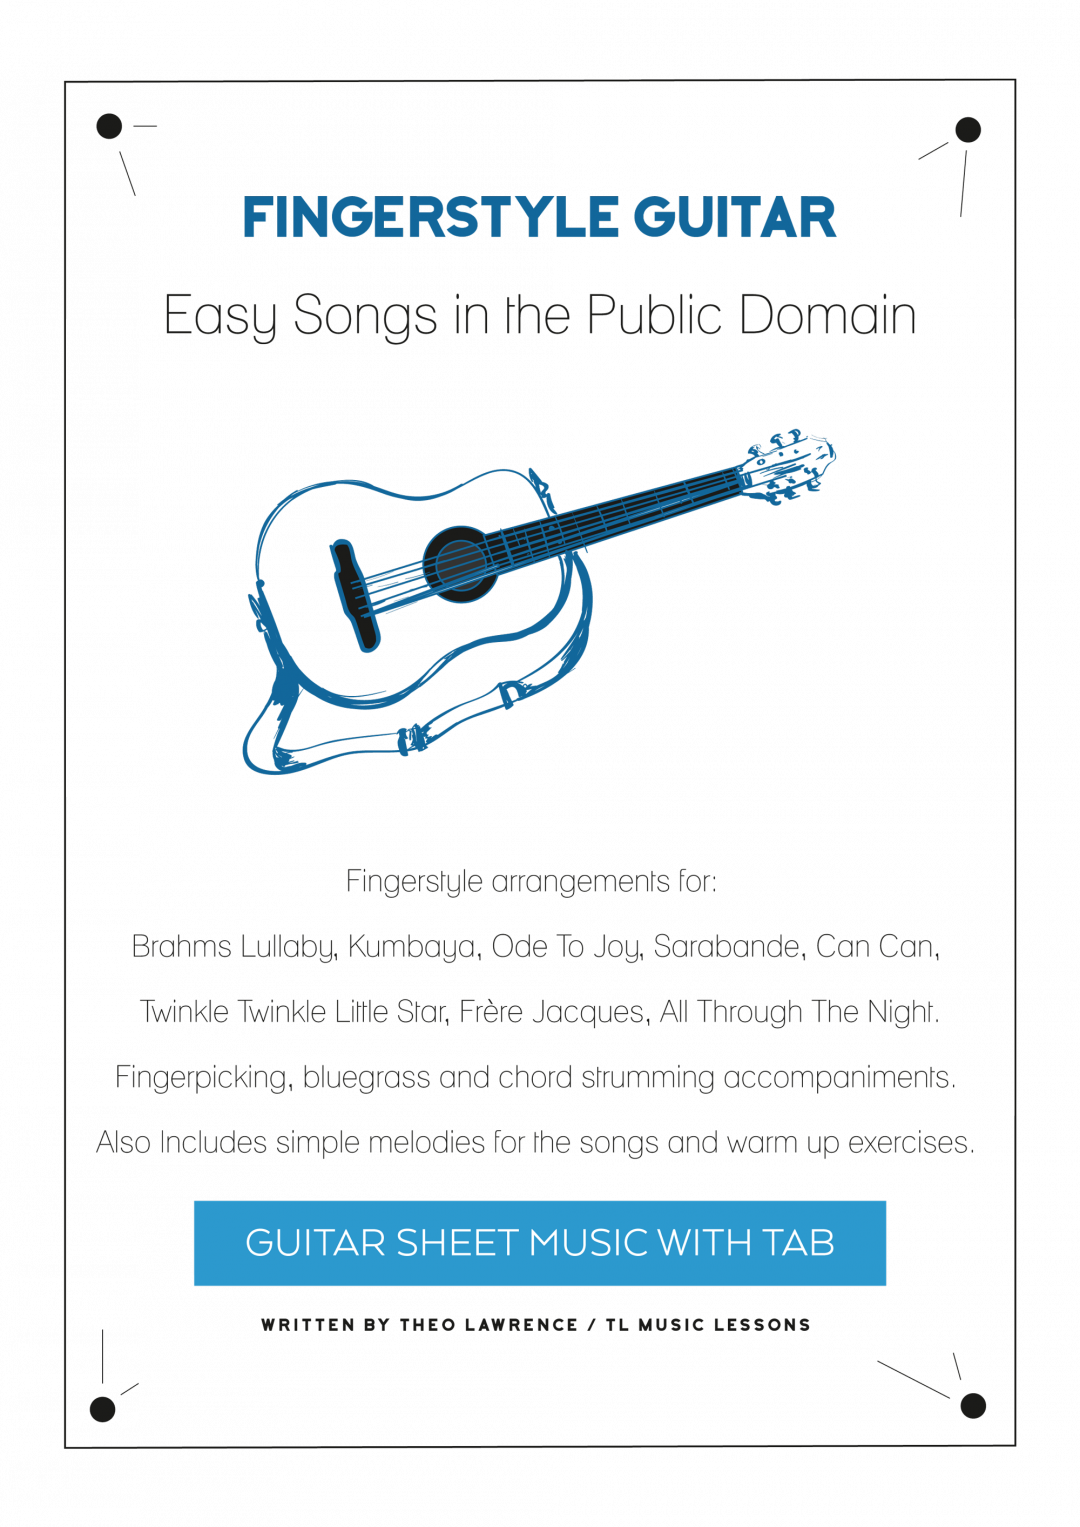 Fingerstyle Guitar – Easy Songs in the Public Domain